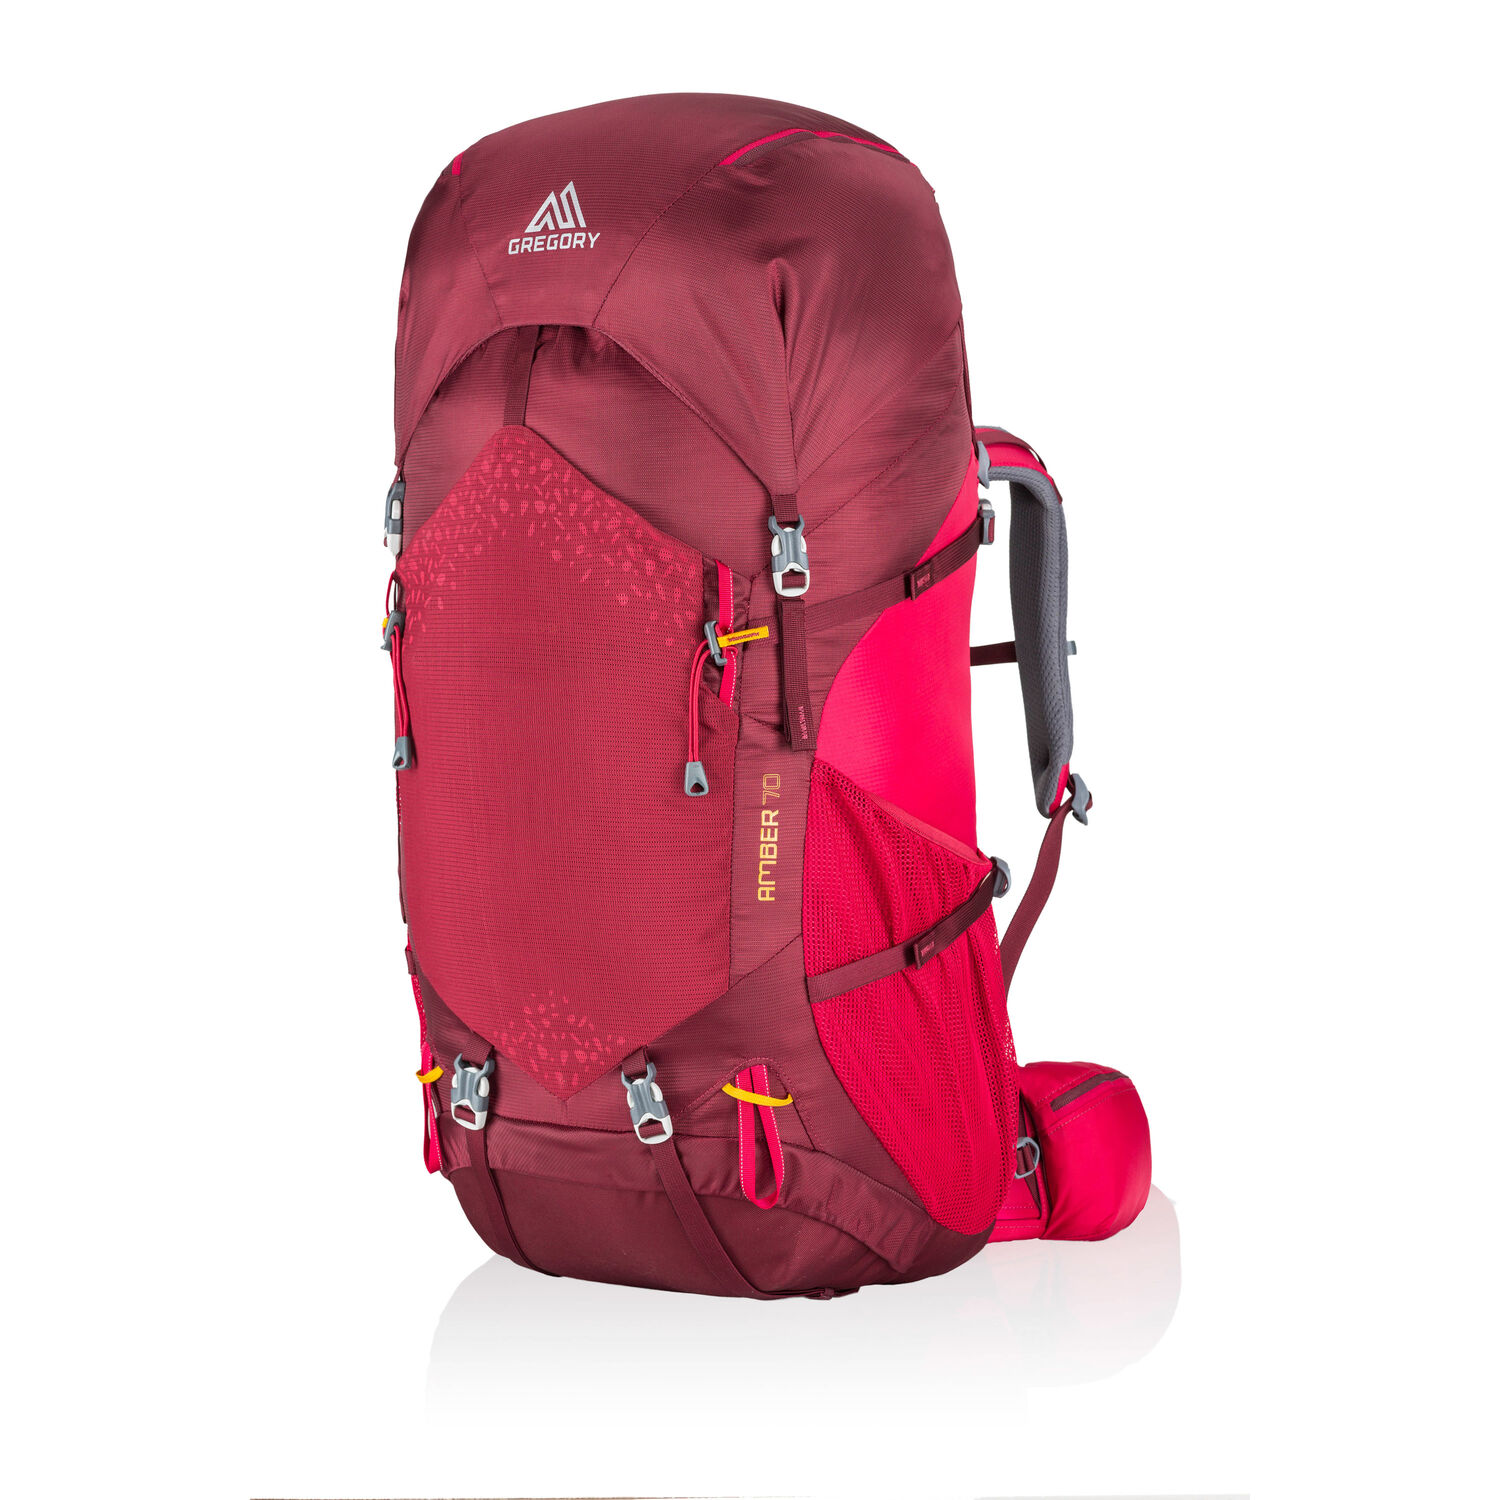 Amber 70 in the color Chili Pepper Red.